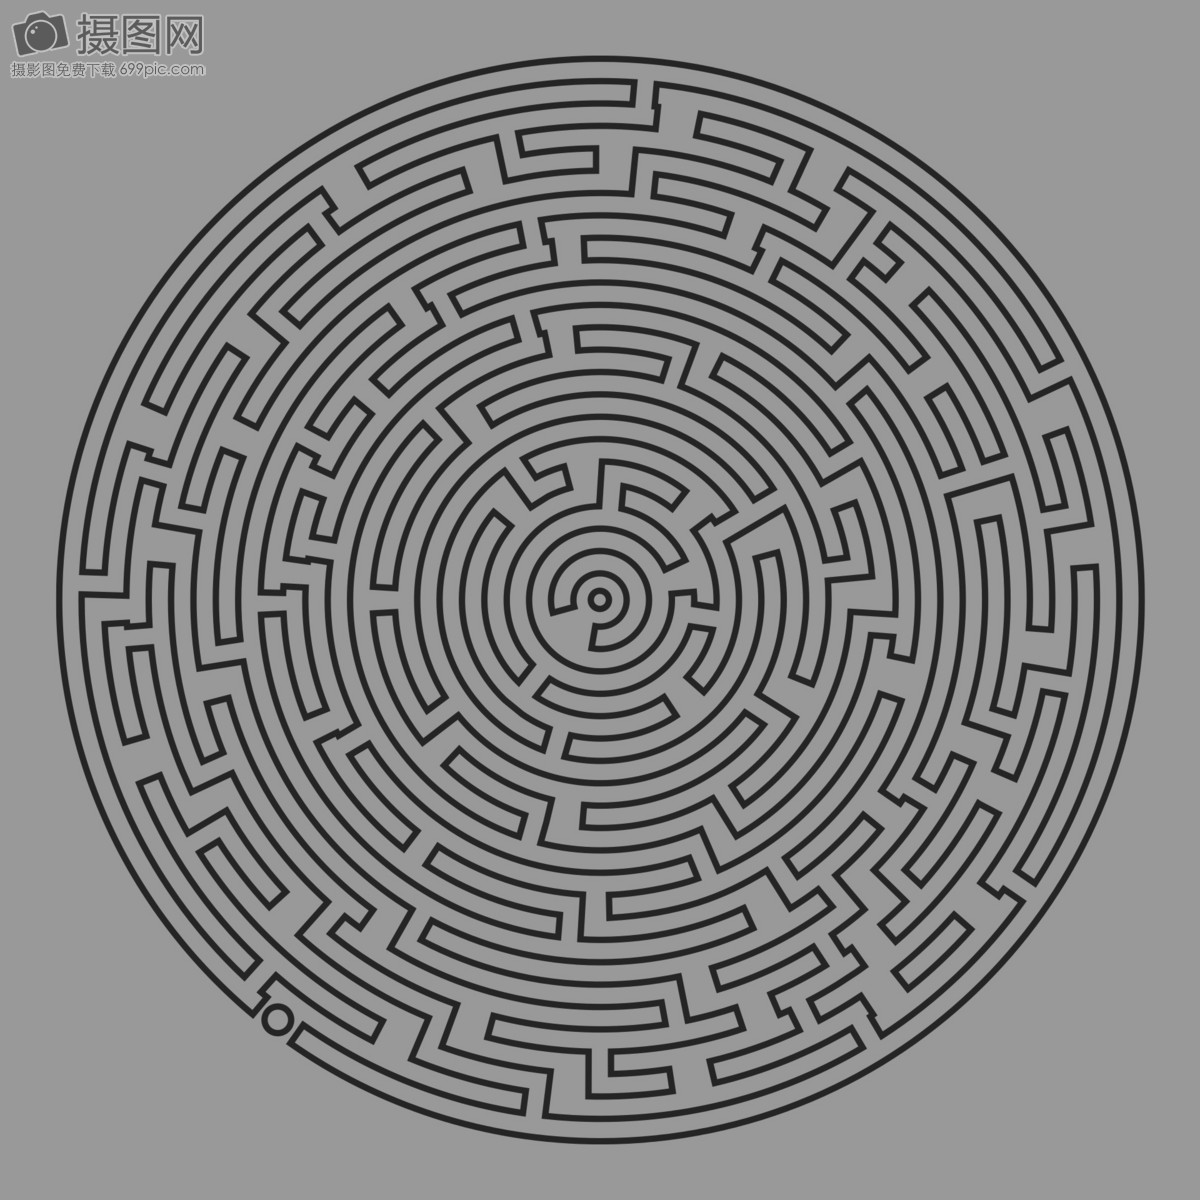 Circular labyrinth photo image_picture free download ...